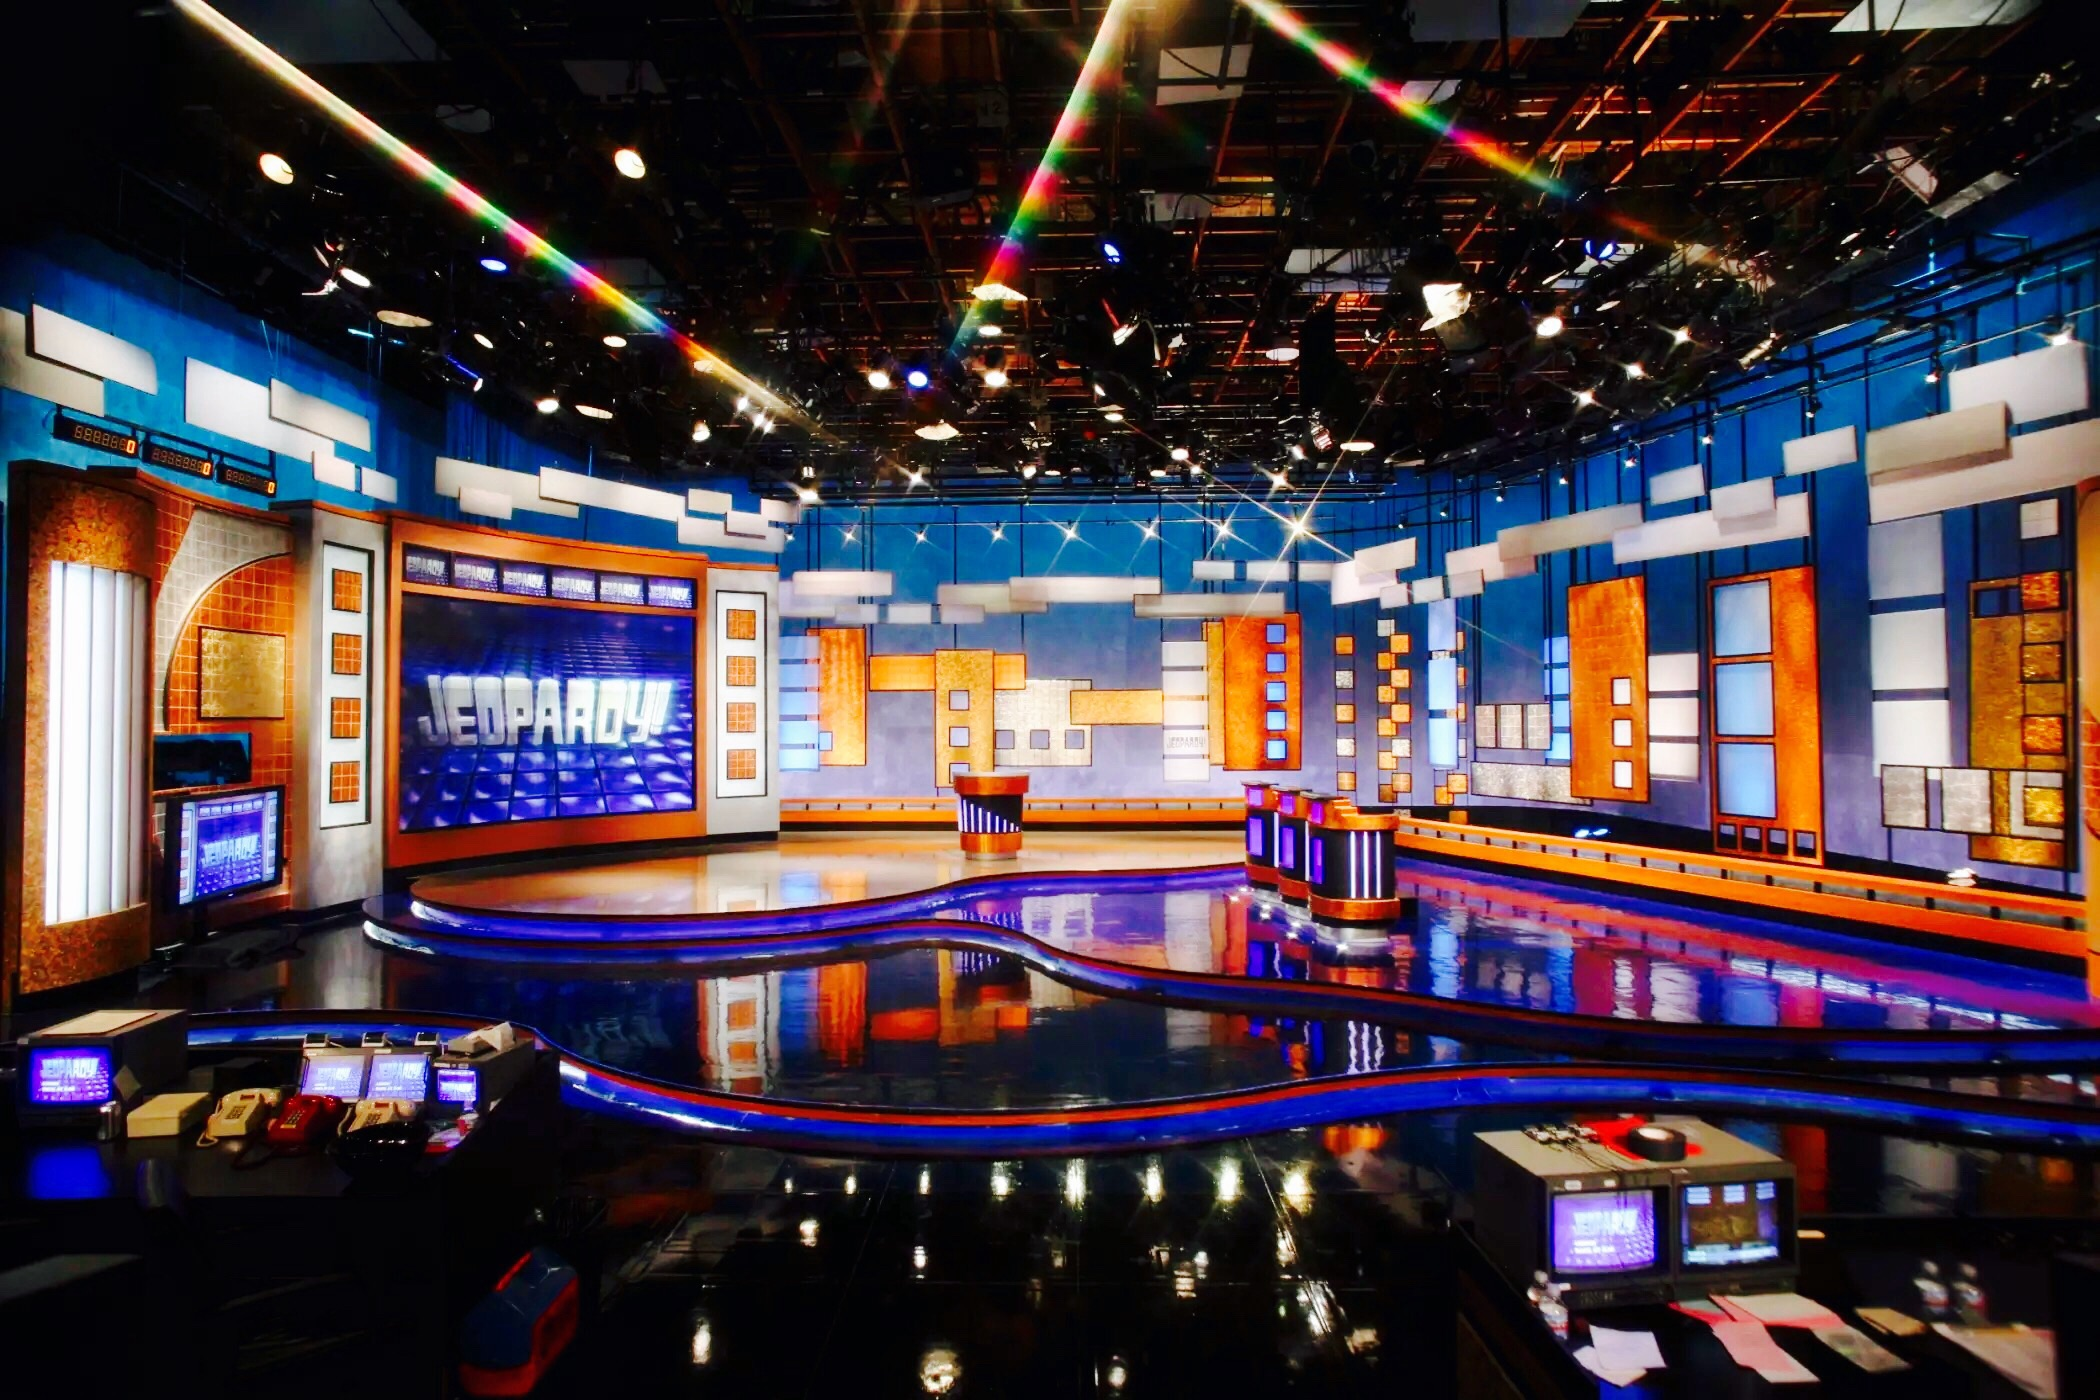 jeopardy in american privacy essay We will write a custom essay sample on patriotism essay or any similar  the sending of american troops to vietnam as  put you at jeopardy for the good.